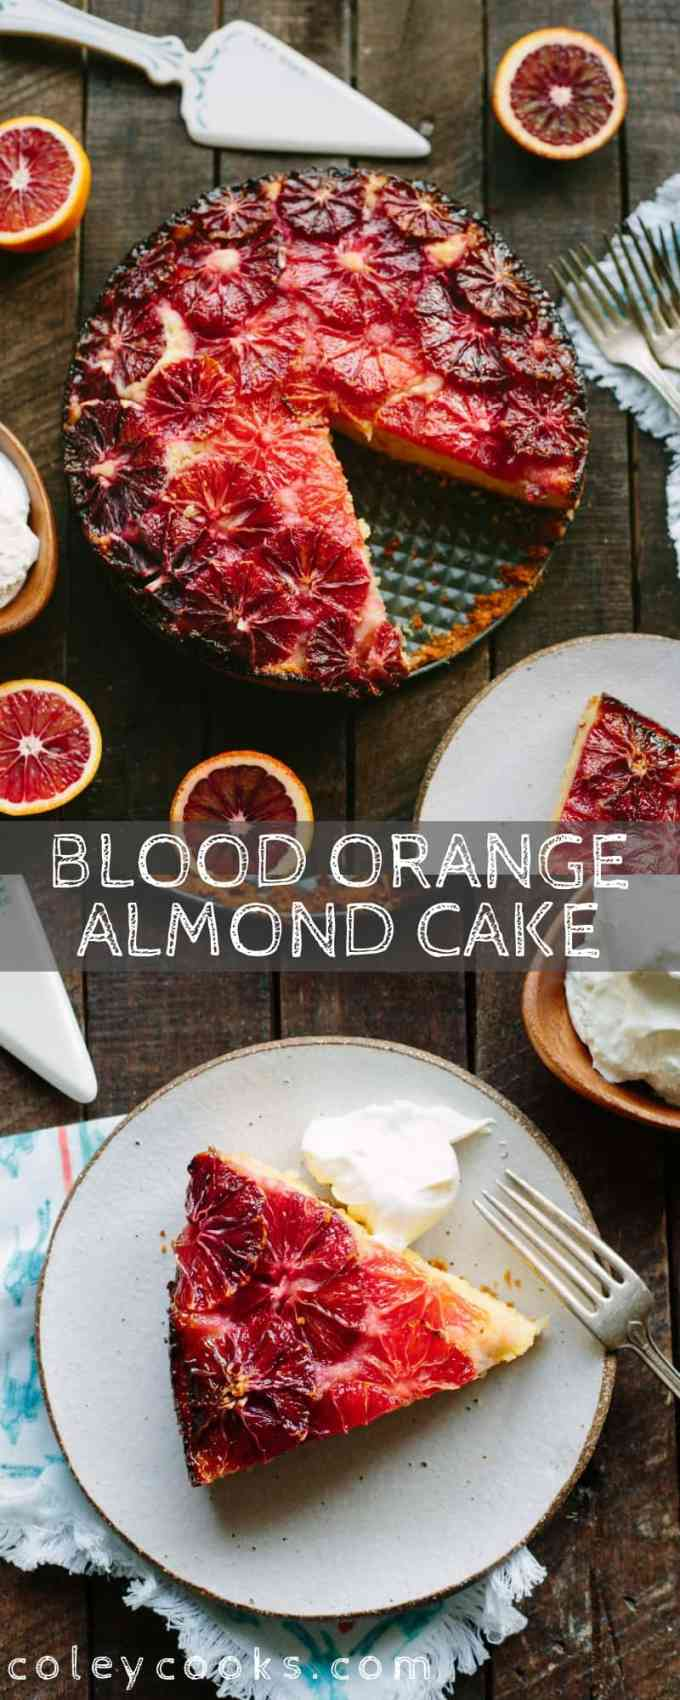 This recipe for Blood Orange + Almond Cake is a beautiful winter citrus dessert with a tender, moist crumb from the addition of yogurt and almond flour. #easy #citrus #blood #orange #winter #dessert #cake #recipe #fruit #yogurt #almond